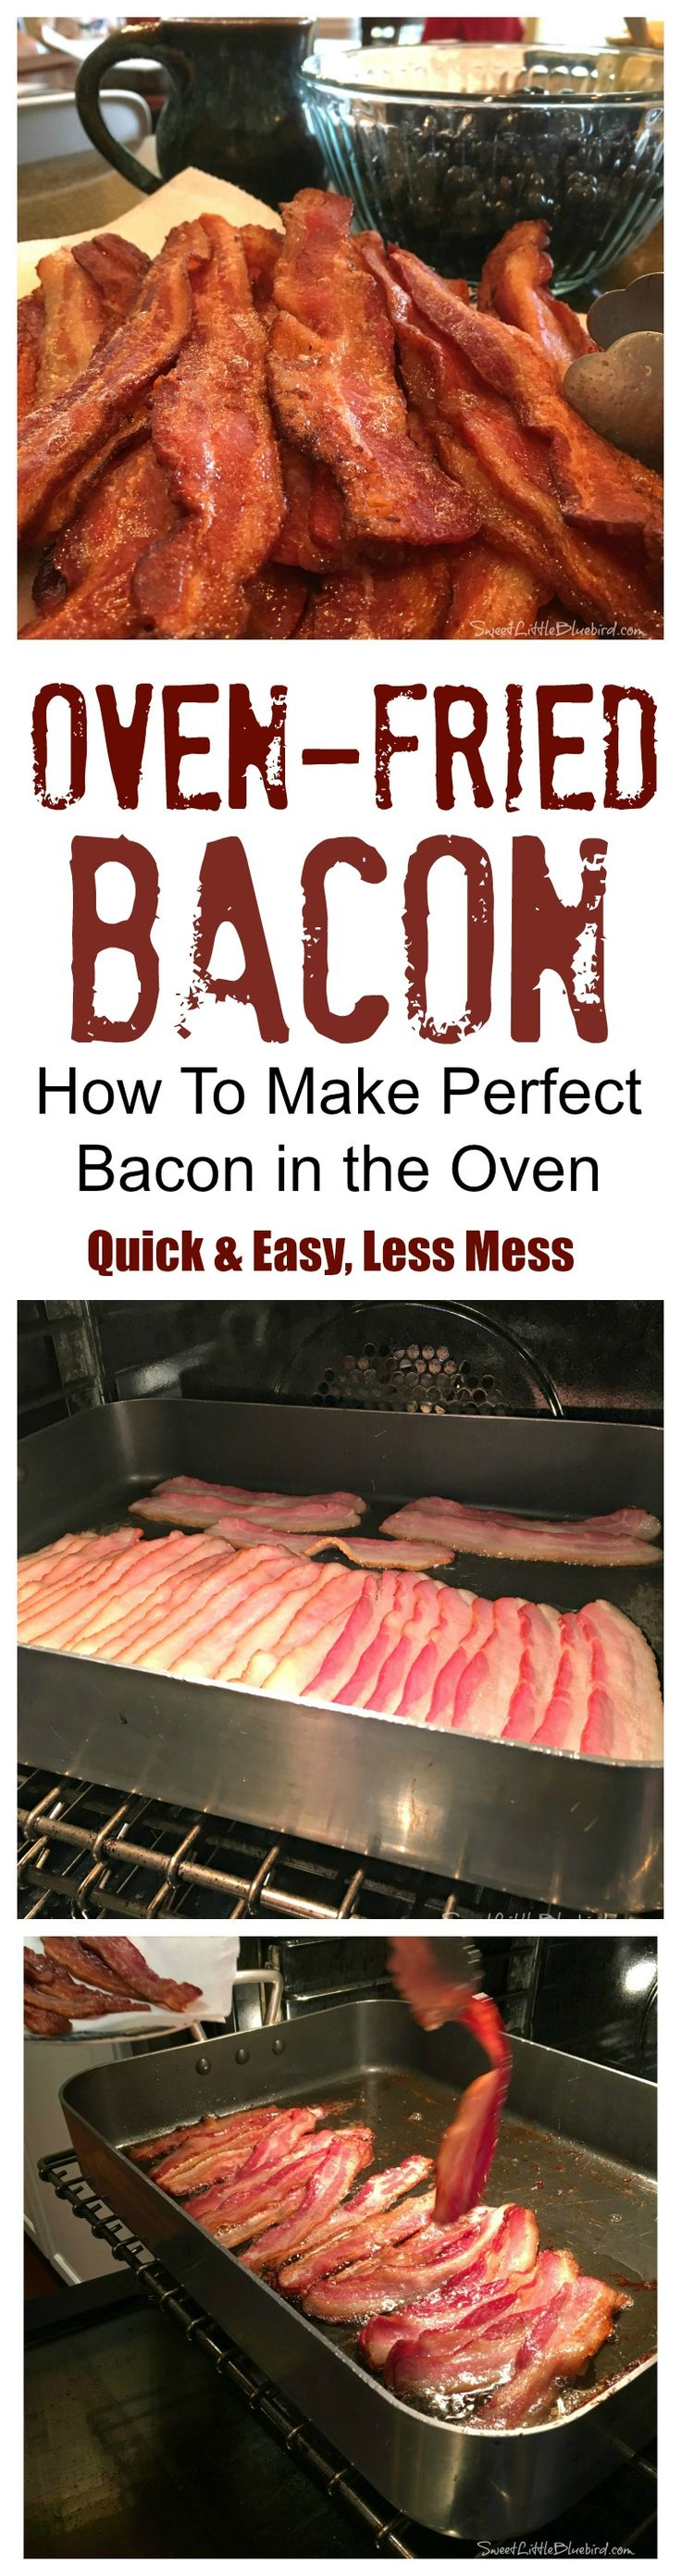 Oven-Fried Bacon -- Quick & Easy, a lot Less Mess!! Perfect crispy bacon every time!! : SweetLittleBluebird